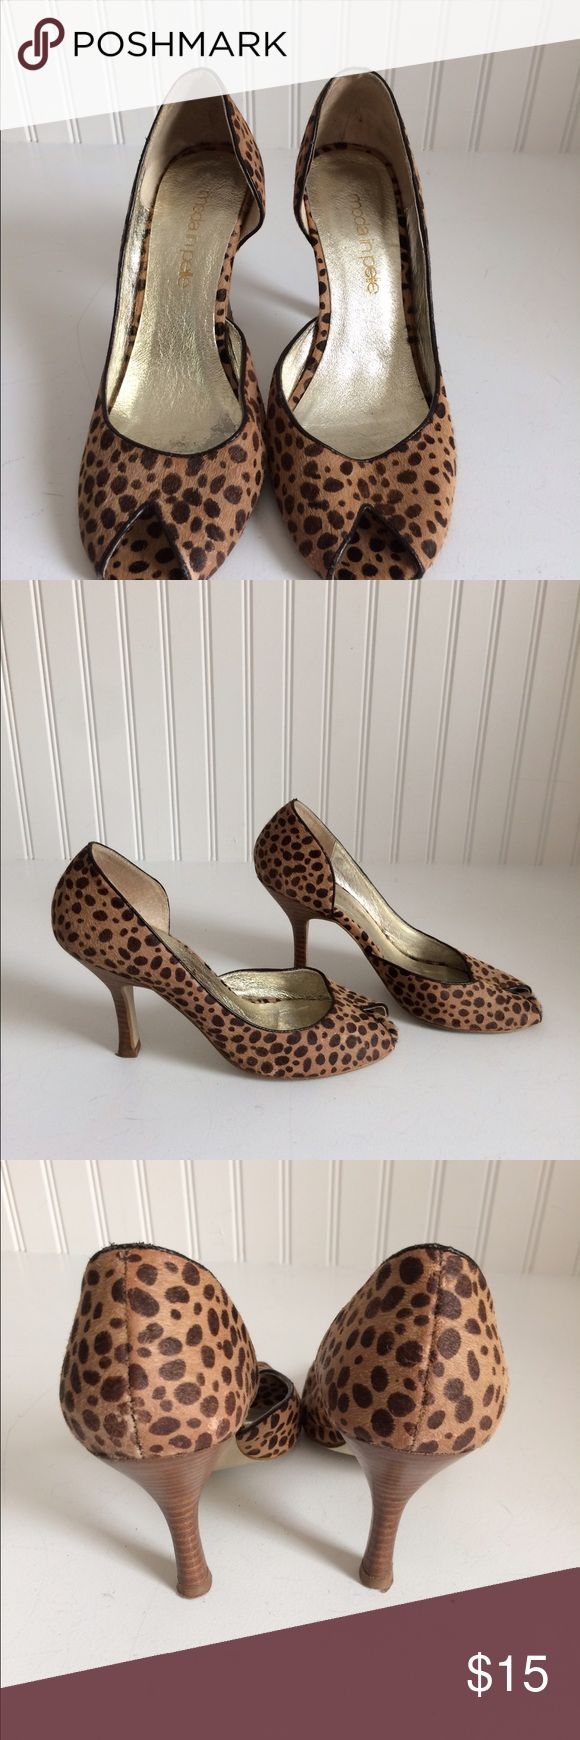 """Moda in Pelle animal print peep toe high heels 6 These super cute open toe Leopard print high heels do show some wear around the toes and the heel area. The wear is mainly mild fading . The sole shows sign of wear.   Size: 6 Heel Height:  3.5"""" moda in Pelle Shoes Heels"""